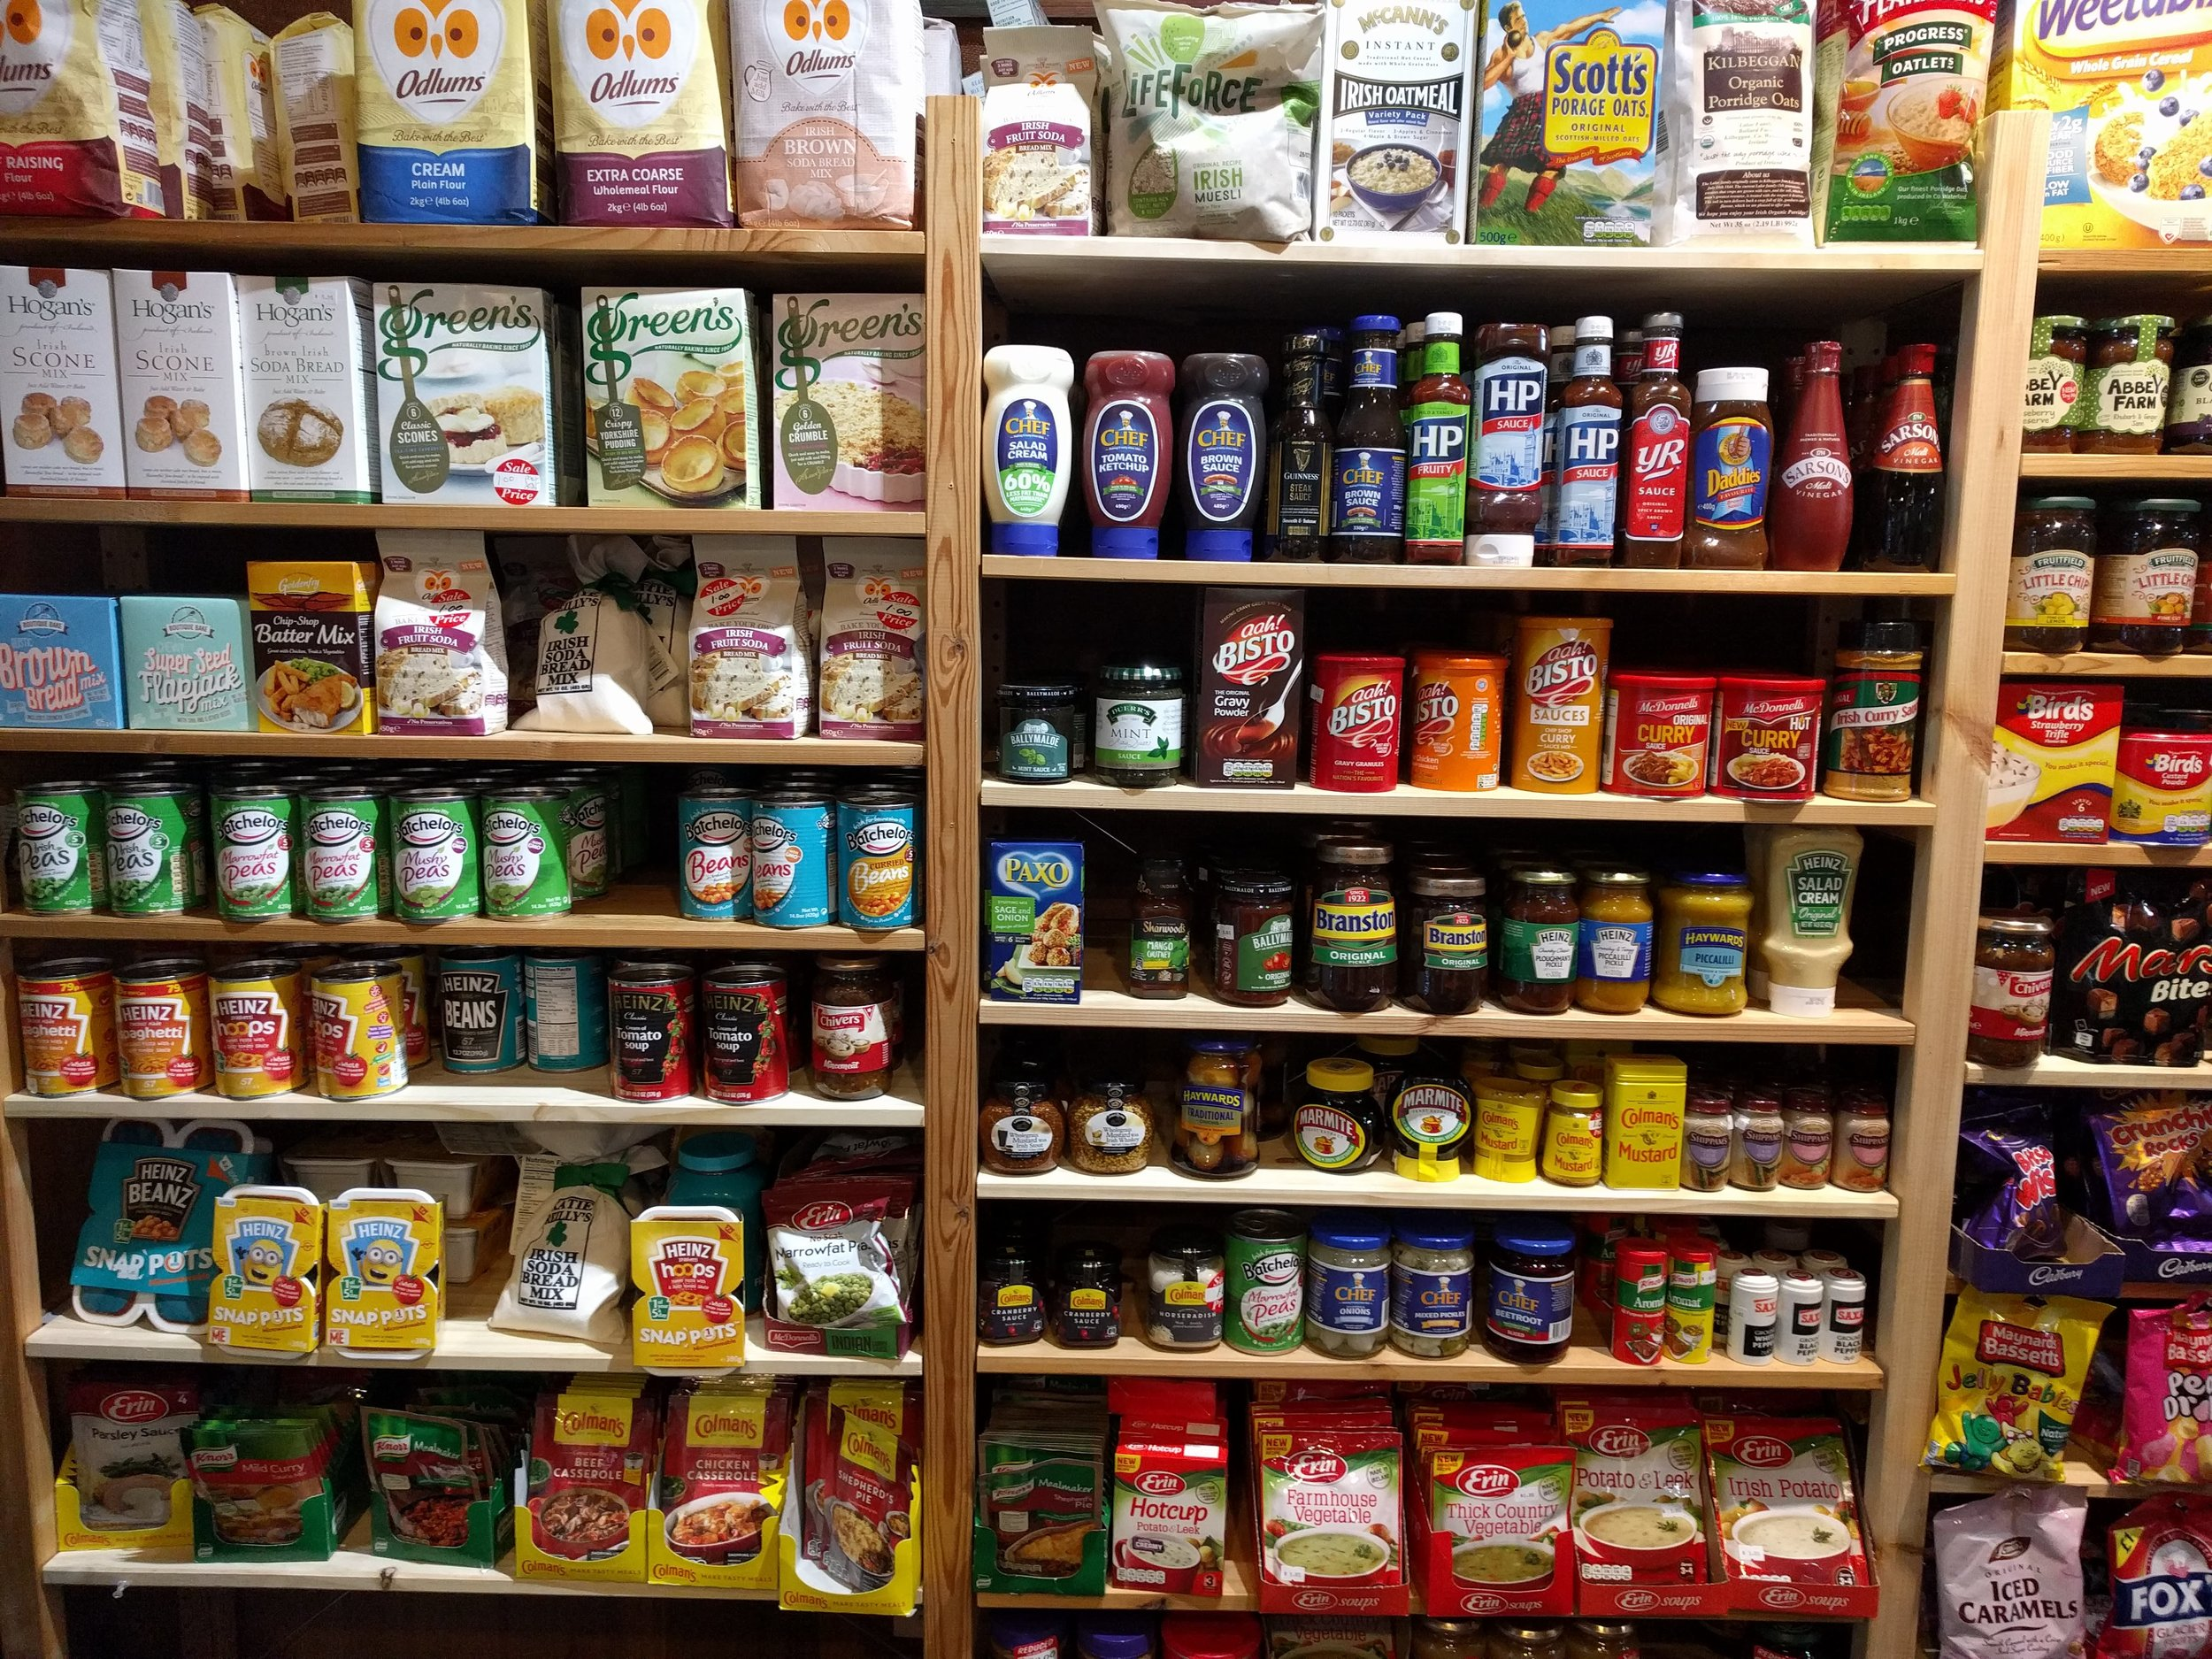 Something for everyone. I always gravitate towards the baking mixes, flours and condiments. Paul went for the curried baked beans and Shepherd's pie mix. The kids, of course, want ALL the snacks and candy.